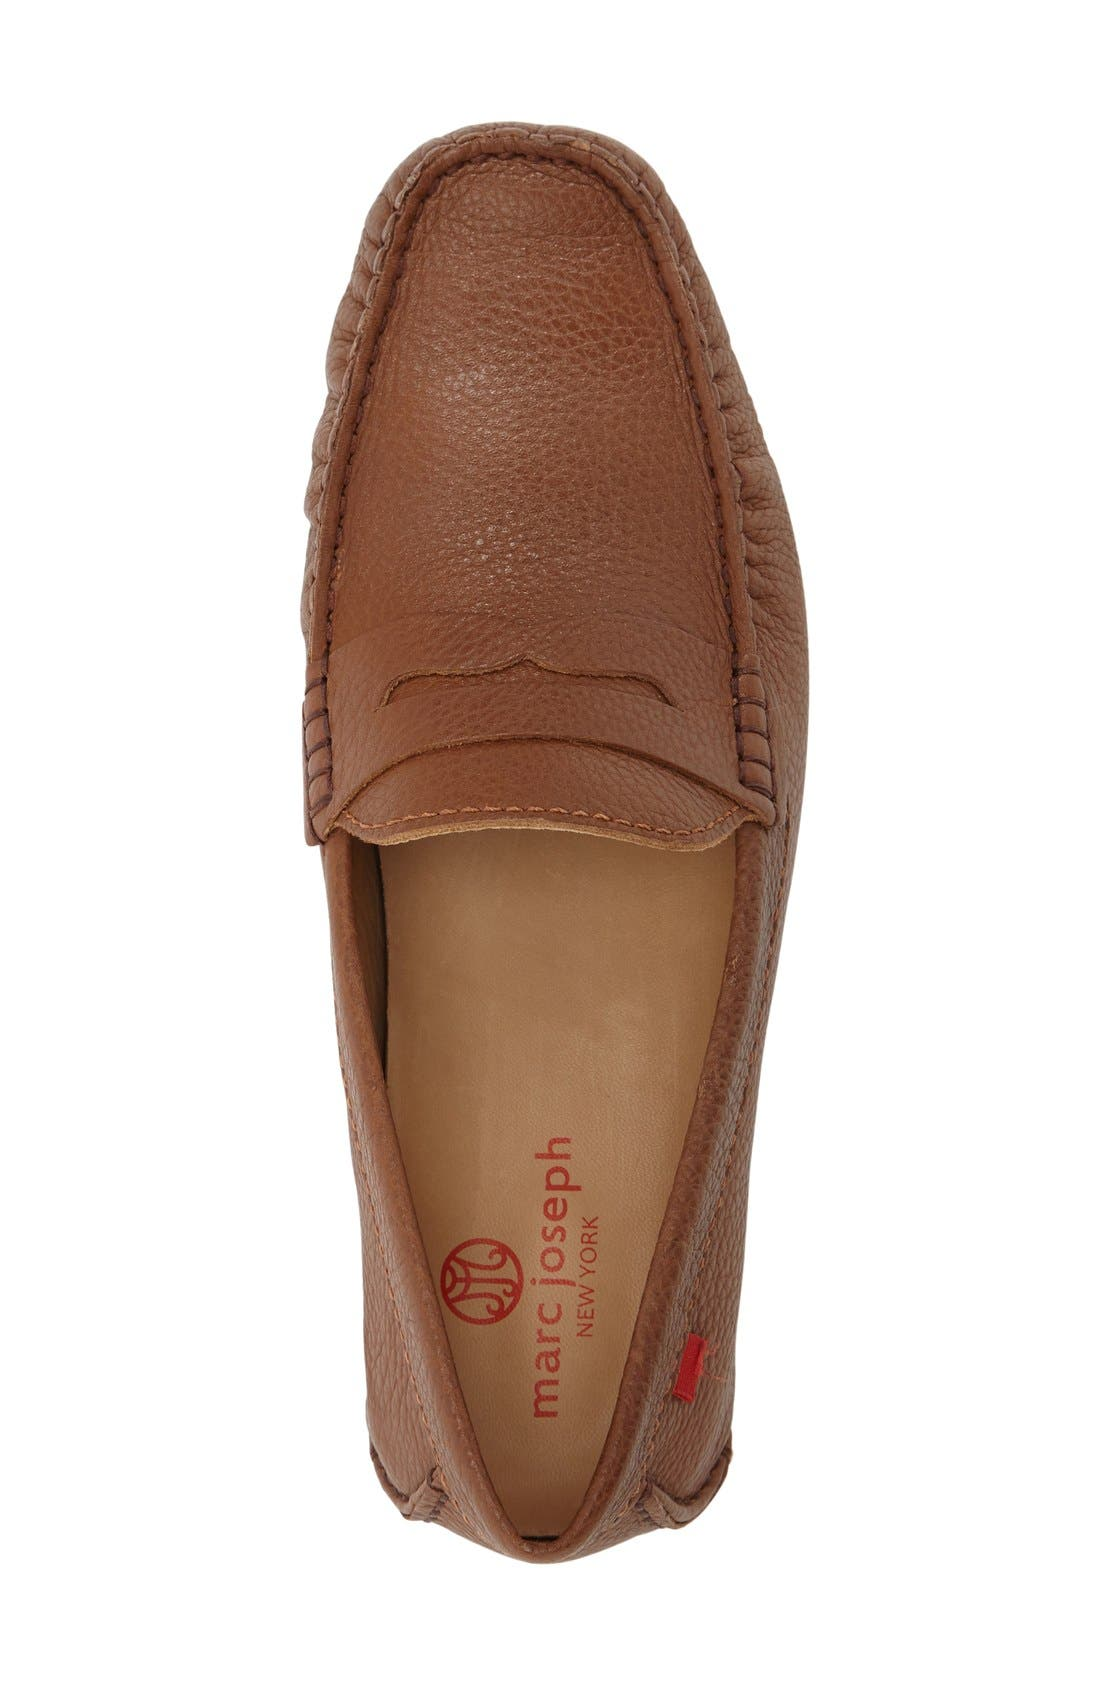 'Union Street' Penny Loafer,                             Alternate thumbnail 18, color,